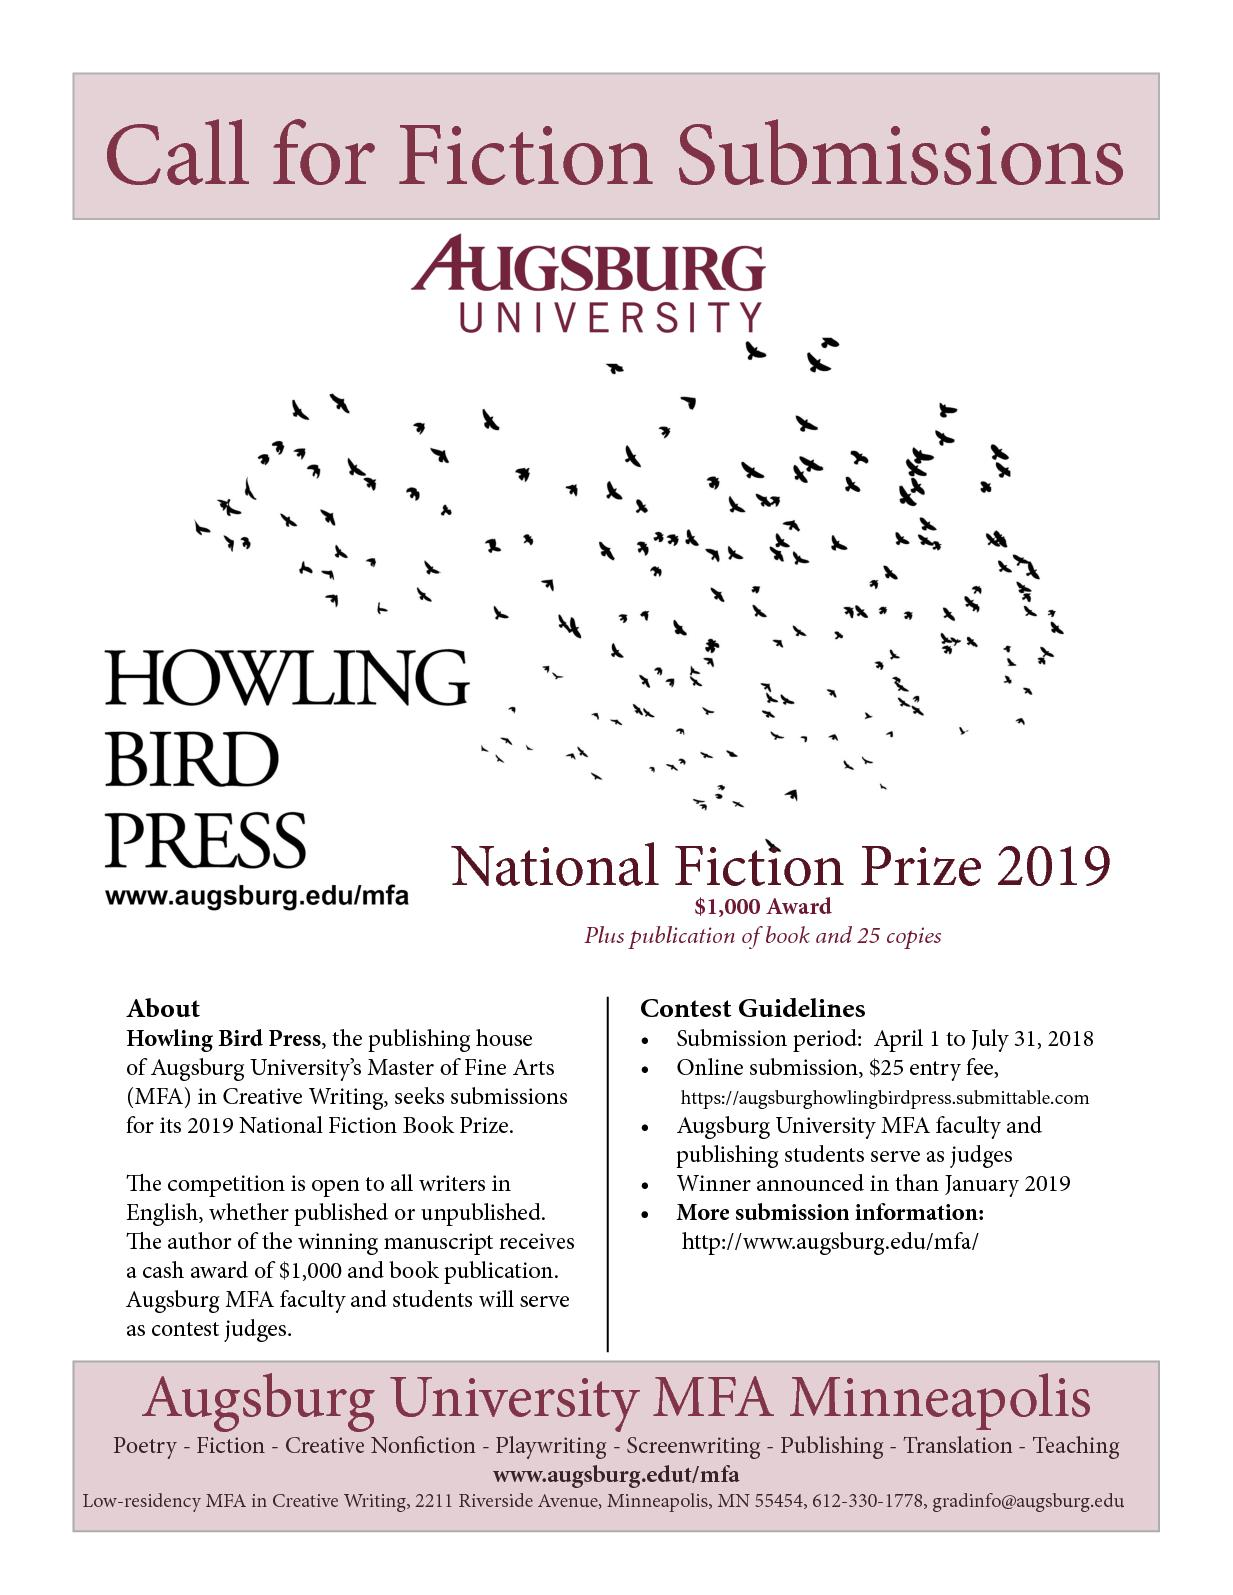 augsburg college low-residency mfa in creative writing Poet heid e erdrich, a member of the turtle mountain band of ojibwe, was born in breckenridge, minnesota, and raised in nearby wahpeton, north dakota, where her ojibwe mother and german american father taught at the bureau of indian affairs boarding school.